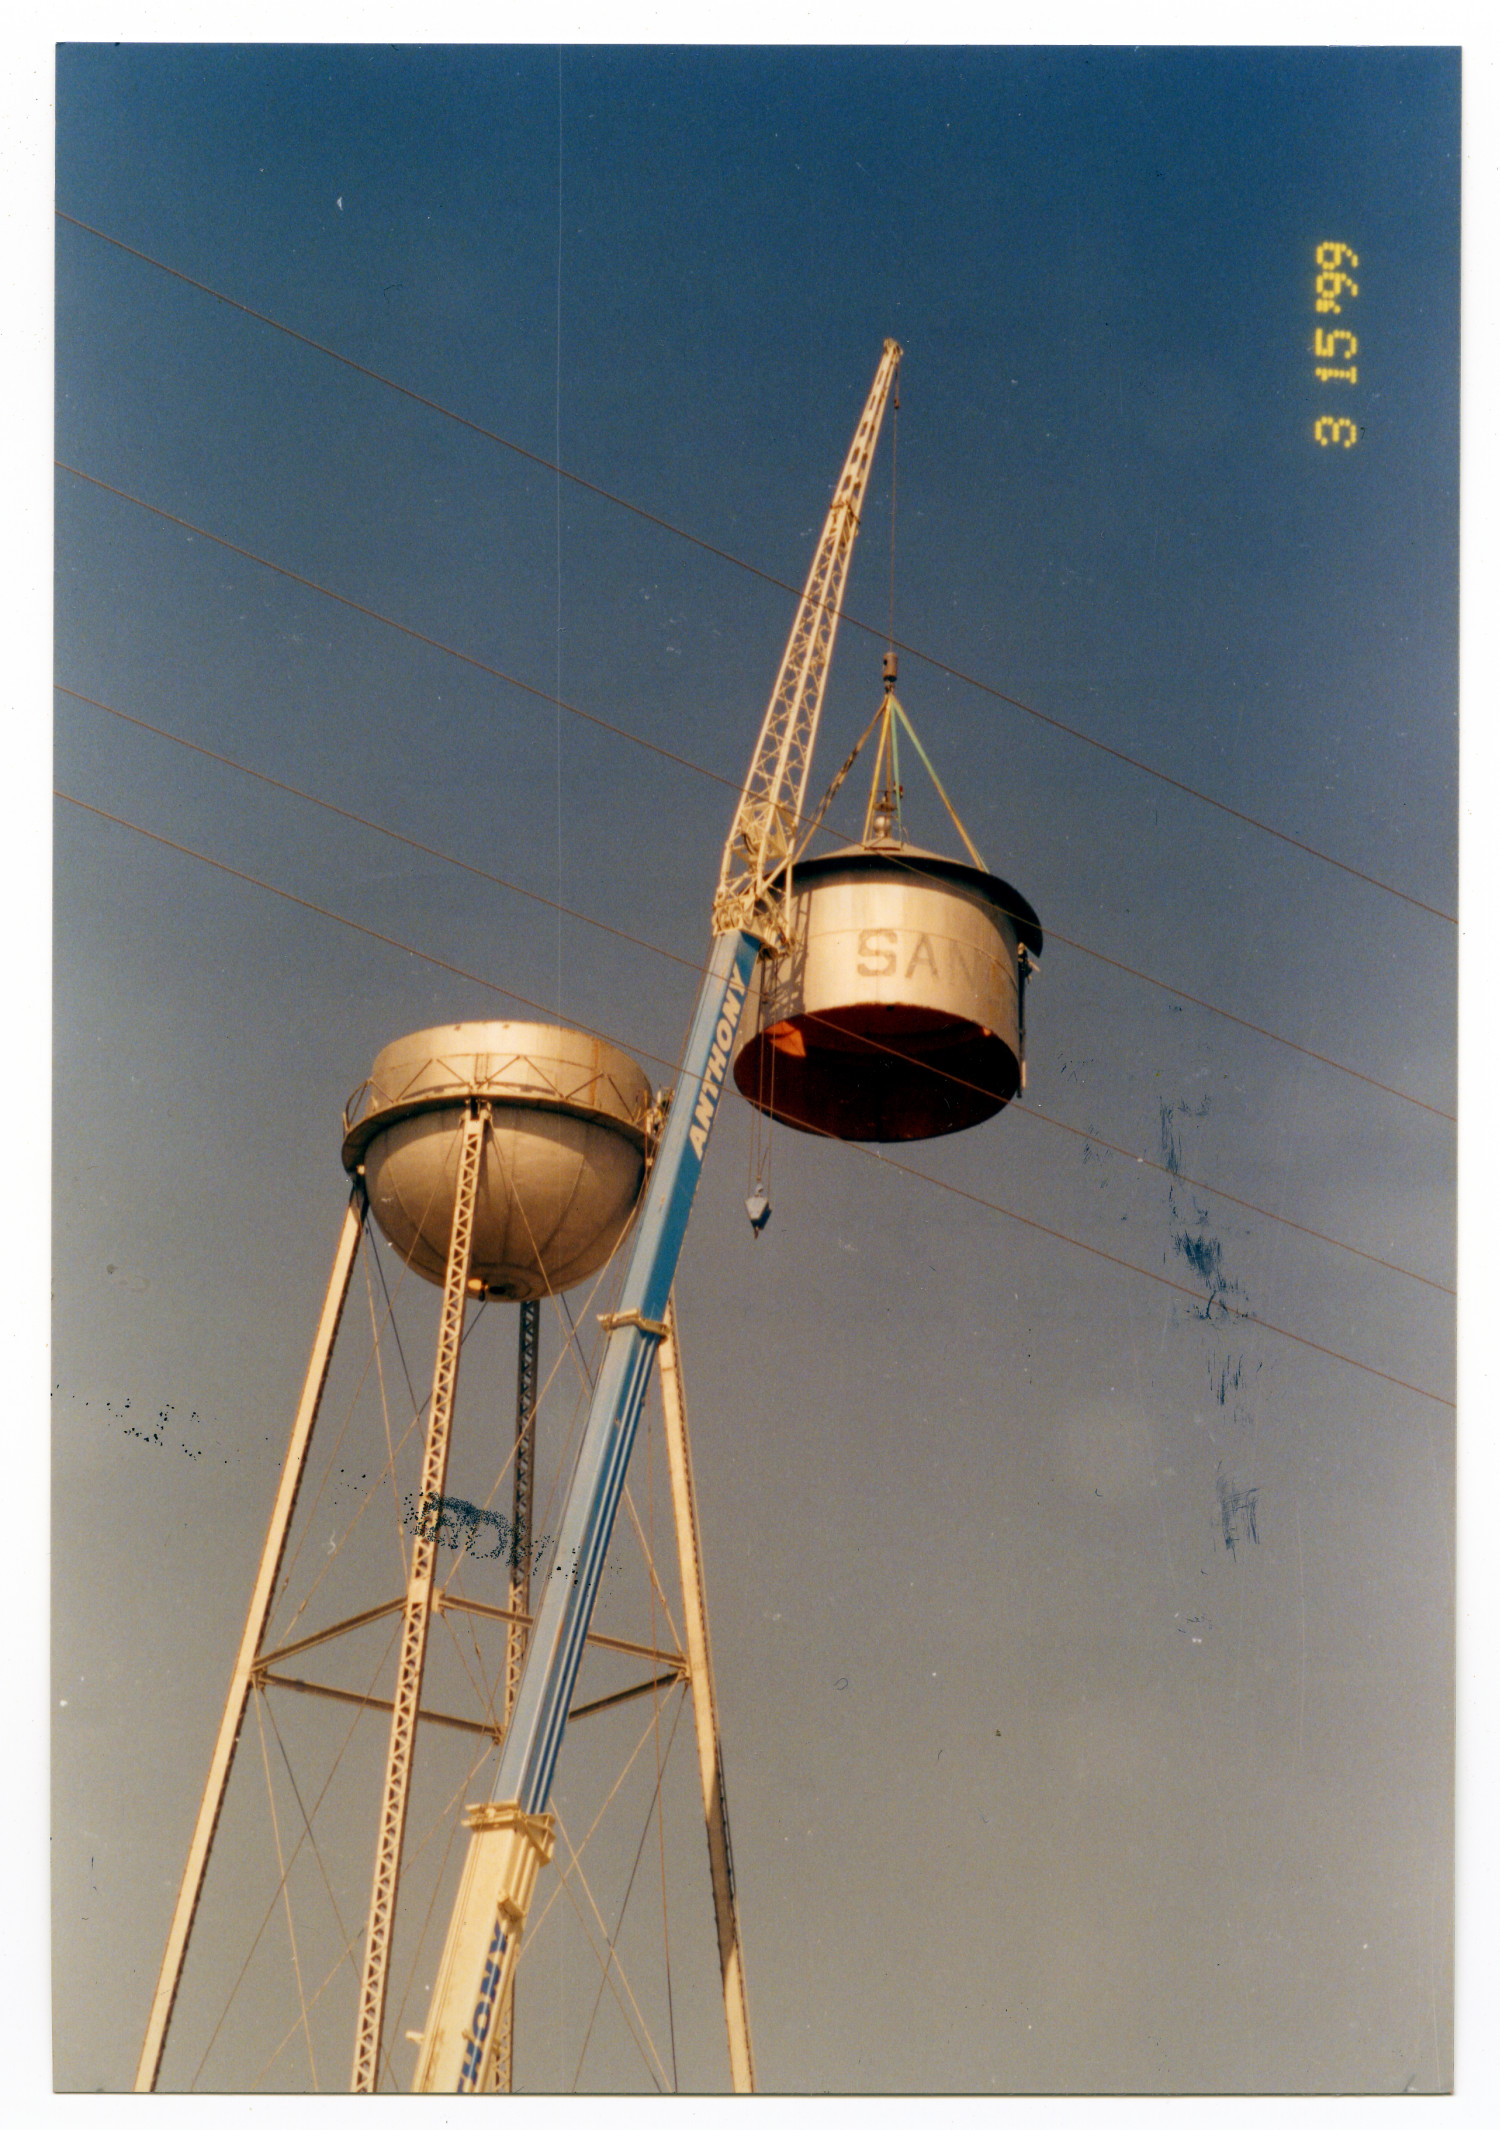 [Dismantling old water tower, removing the top]                                                                                                      [Sequence #]: 1 of 2